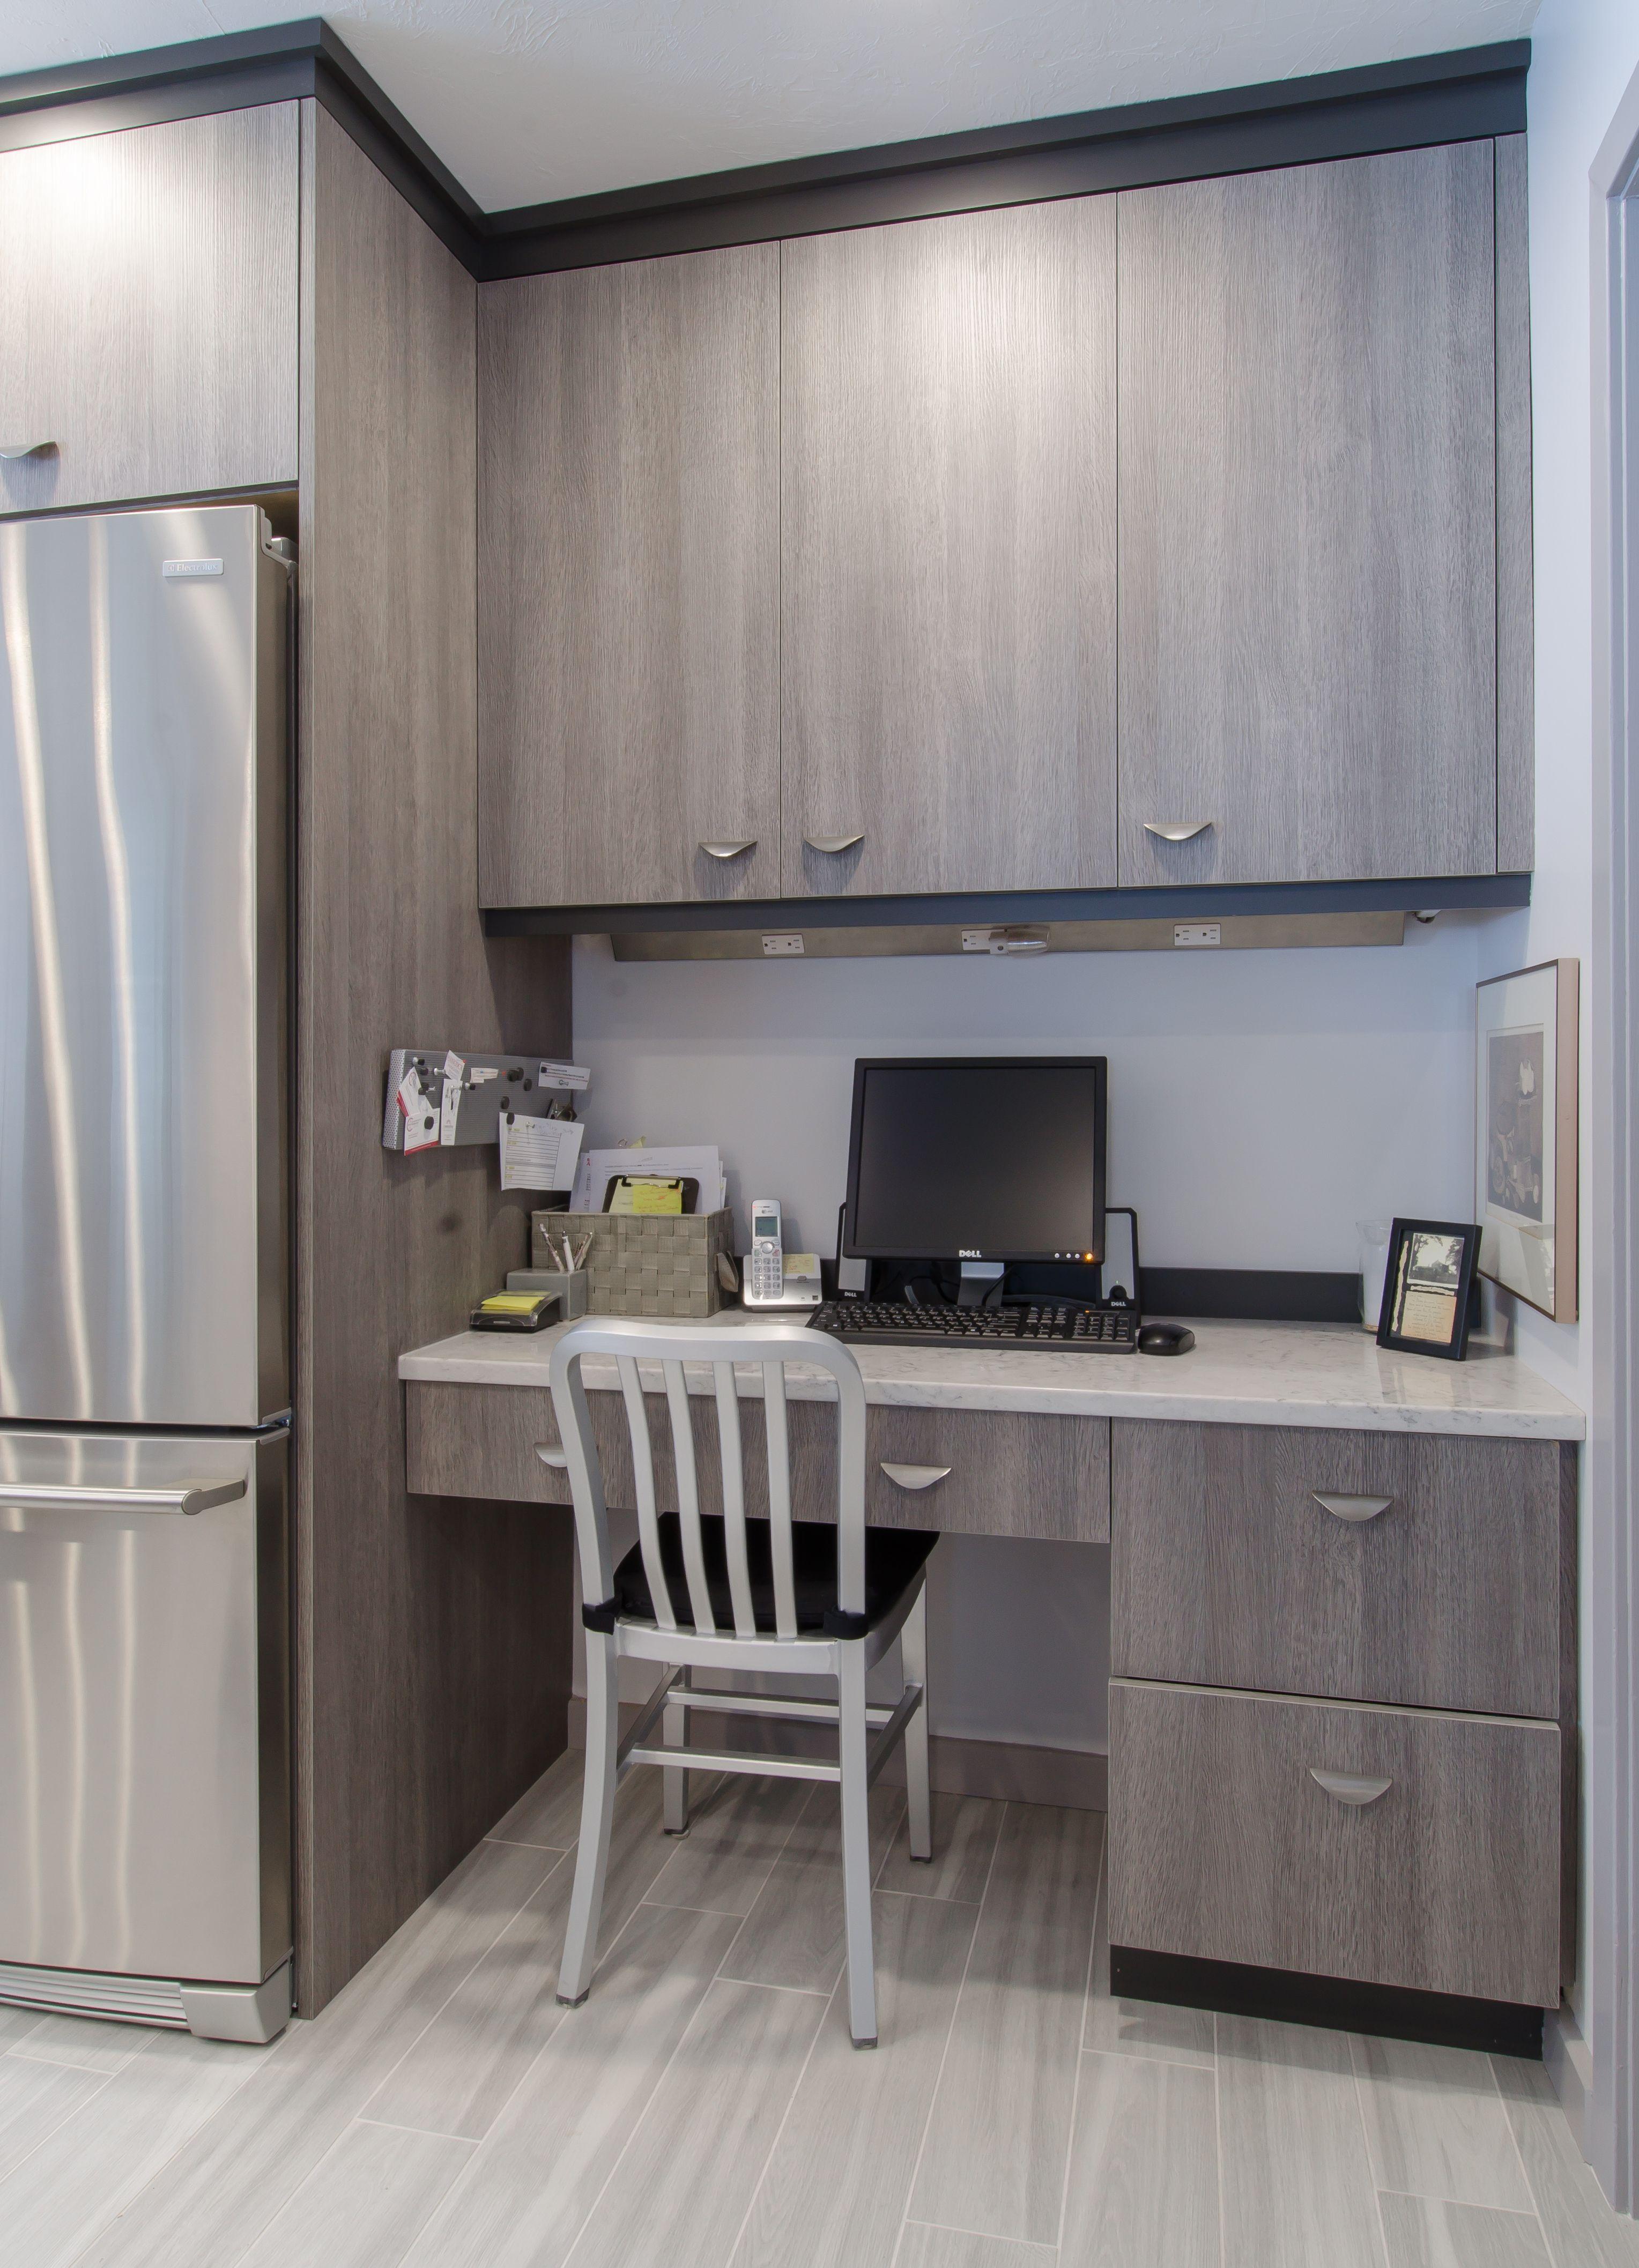 home office built into kitchen wall cabinets for storage on wall cabinets id=96399